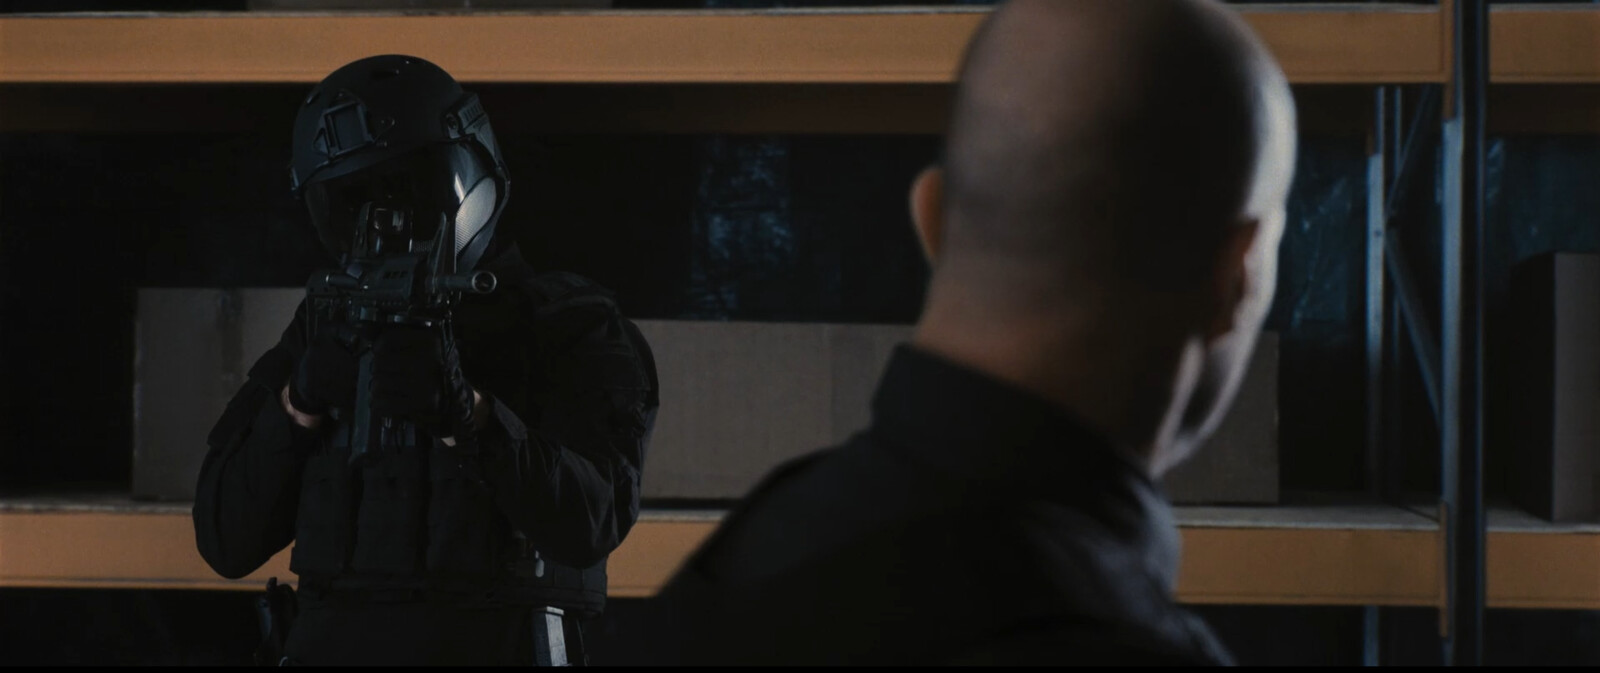 Shelves on Statham's right. Microscopic and precise use of clone brush.